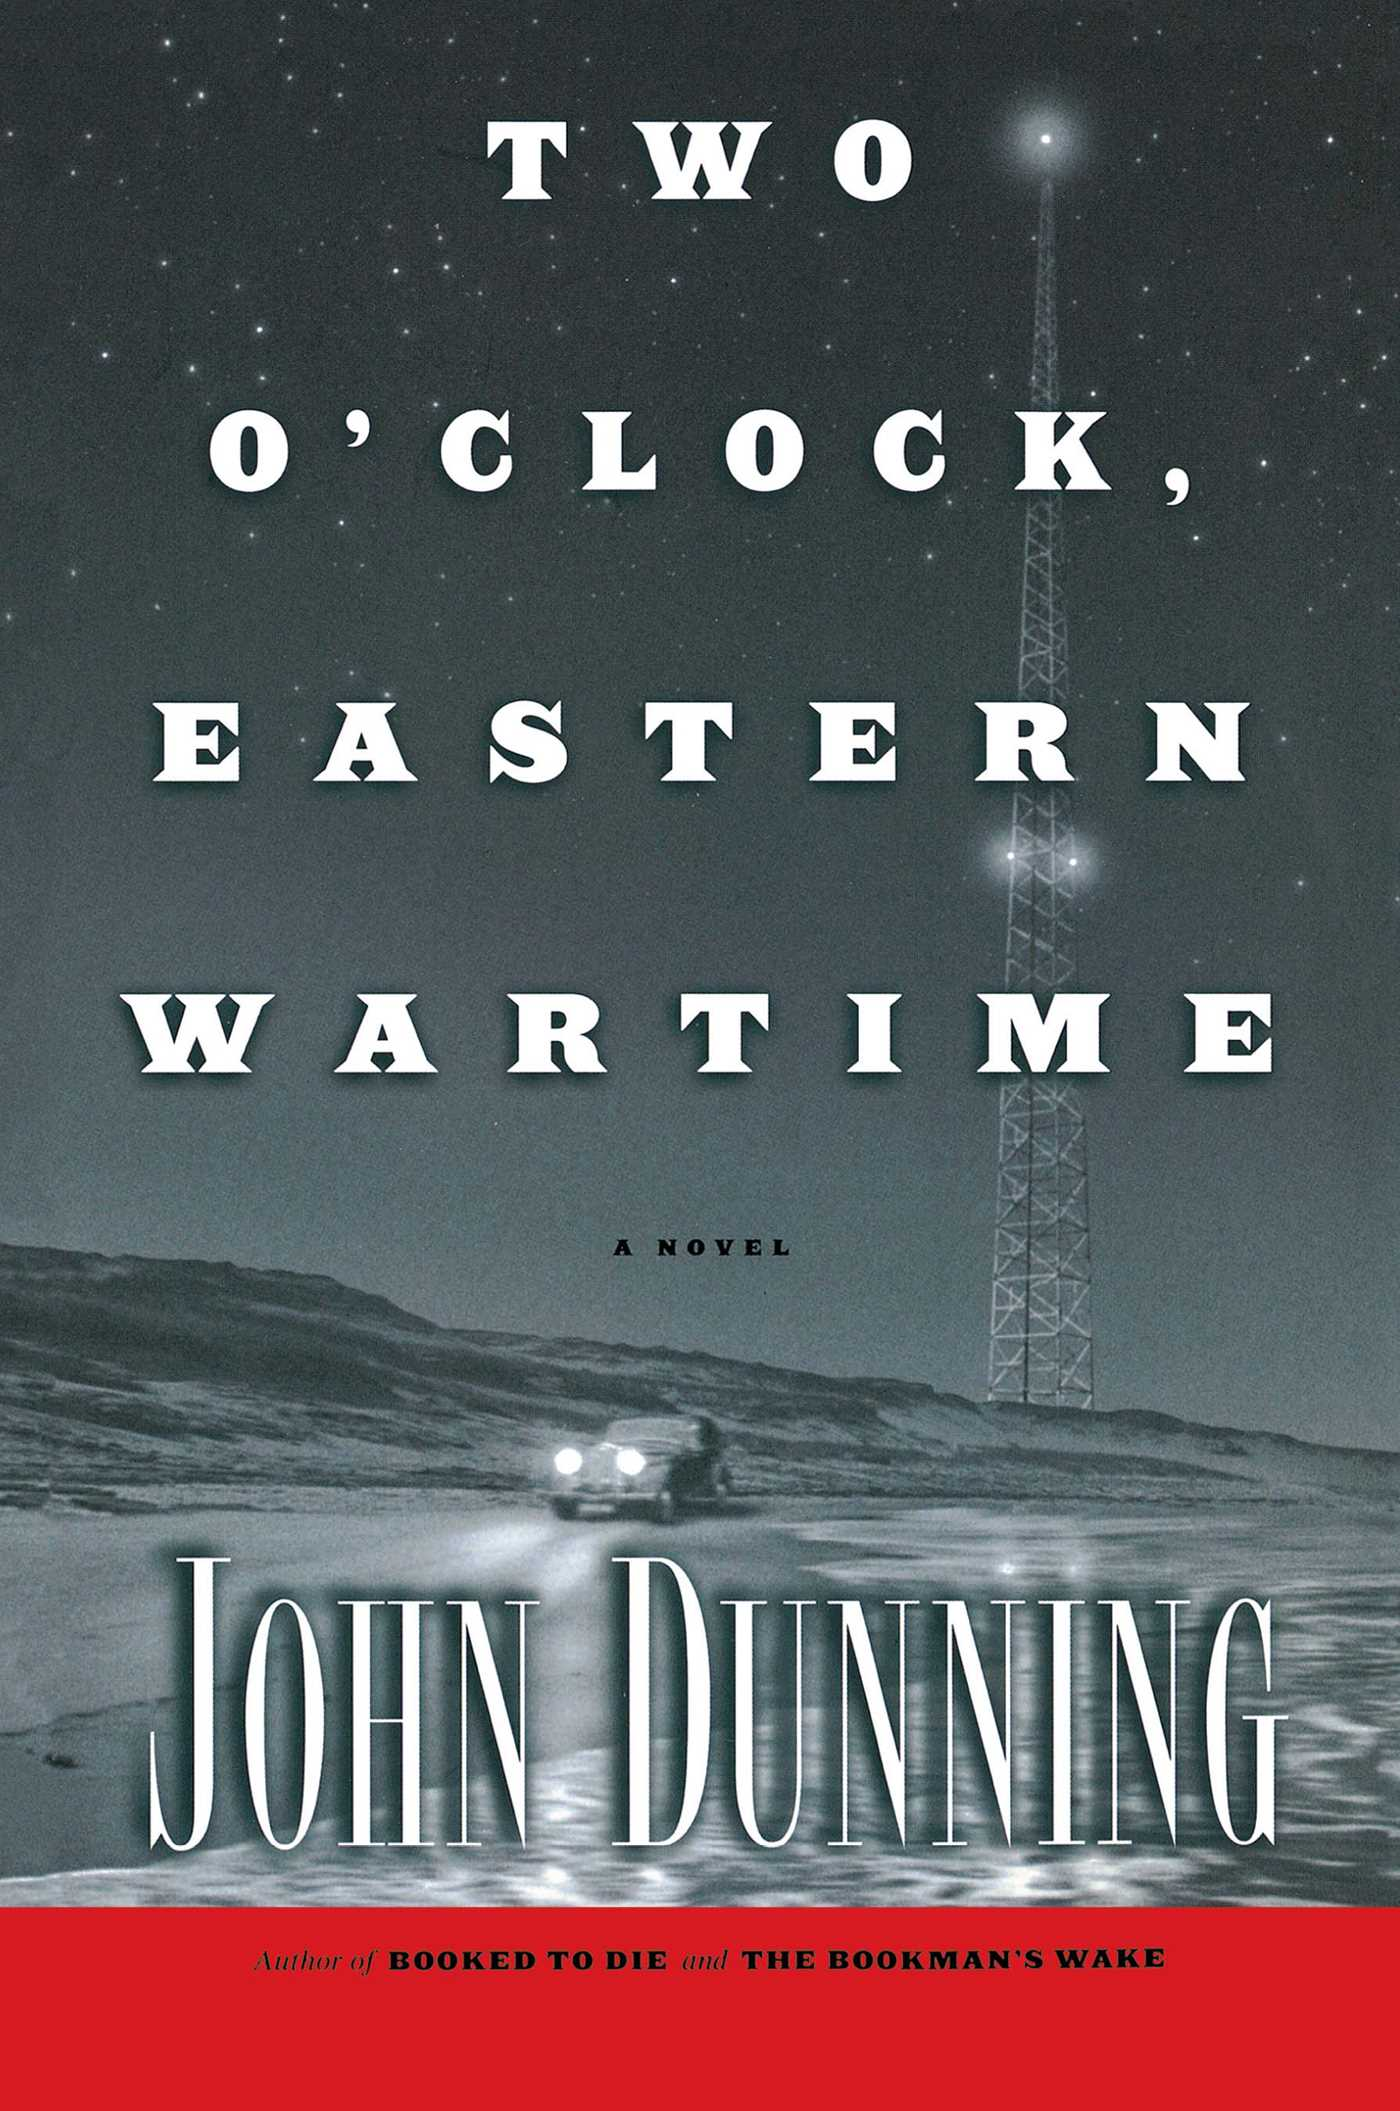 Two oclock eastern wartime 9780743206013 hr